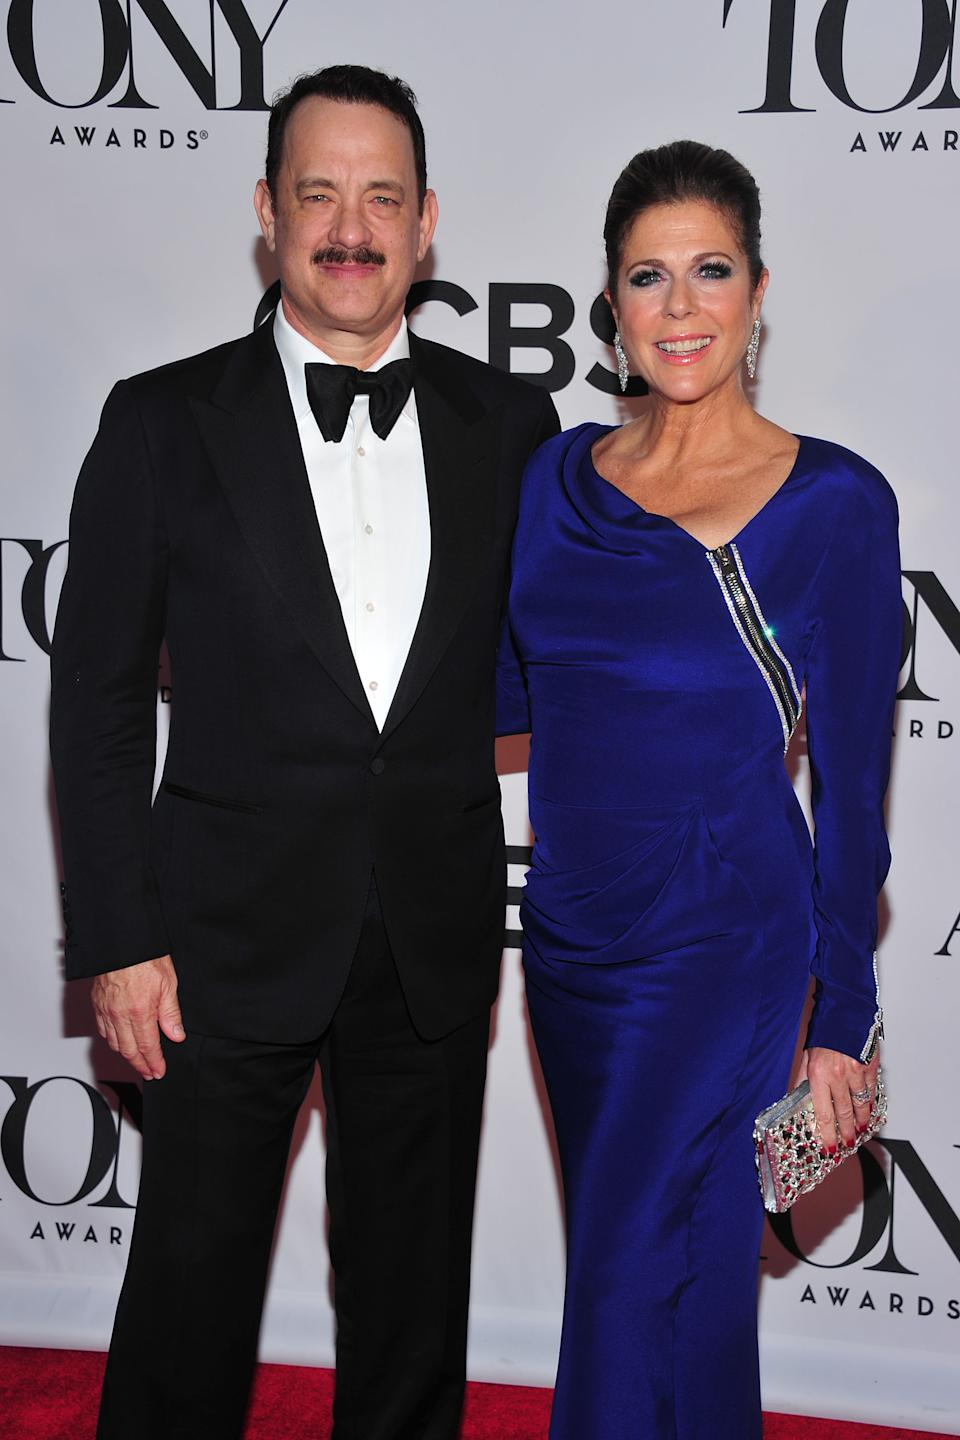 Tom Hanks and Rita Wilson arrives on the red carpet at the 67th Annual Tony Awards, on Sunday, June 9, 2013 in New York. (Photo by Charles Sykes/Invision/AP)